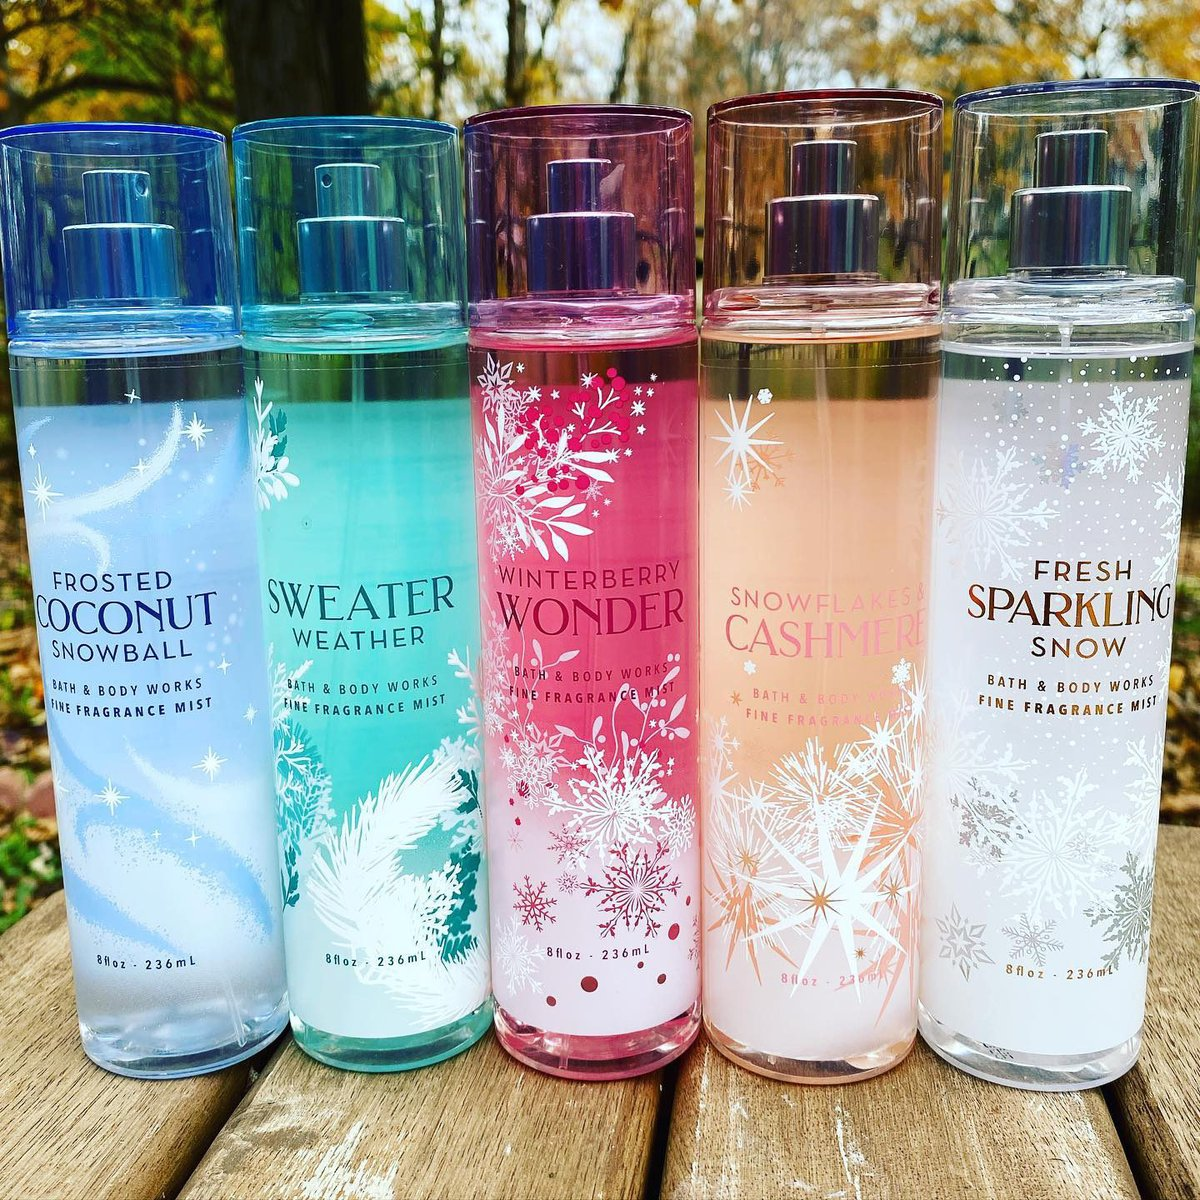 Bath Body Works On Twitter Winter Wonderland Fragrances Scent From Santa Hit The Save Button For 5 Perfect Gift Ideas Queengirlgeek